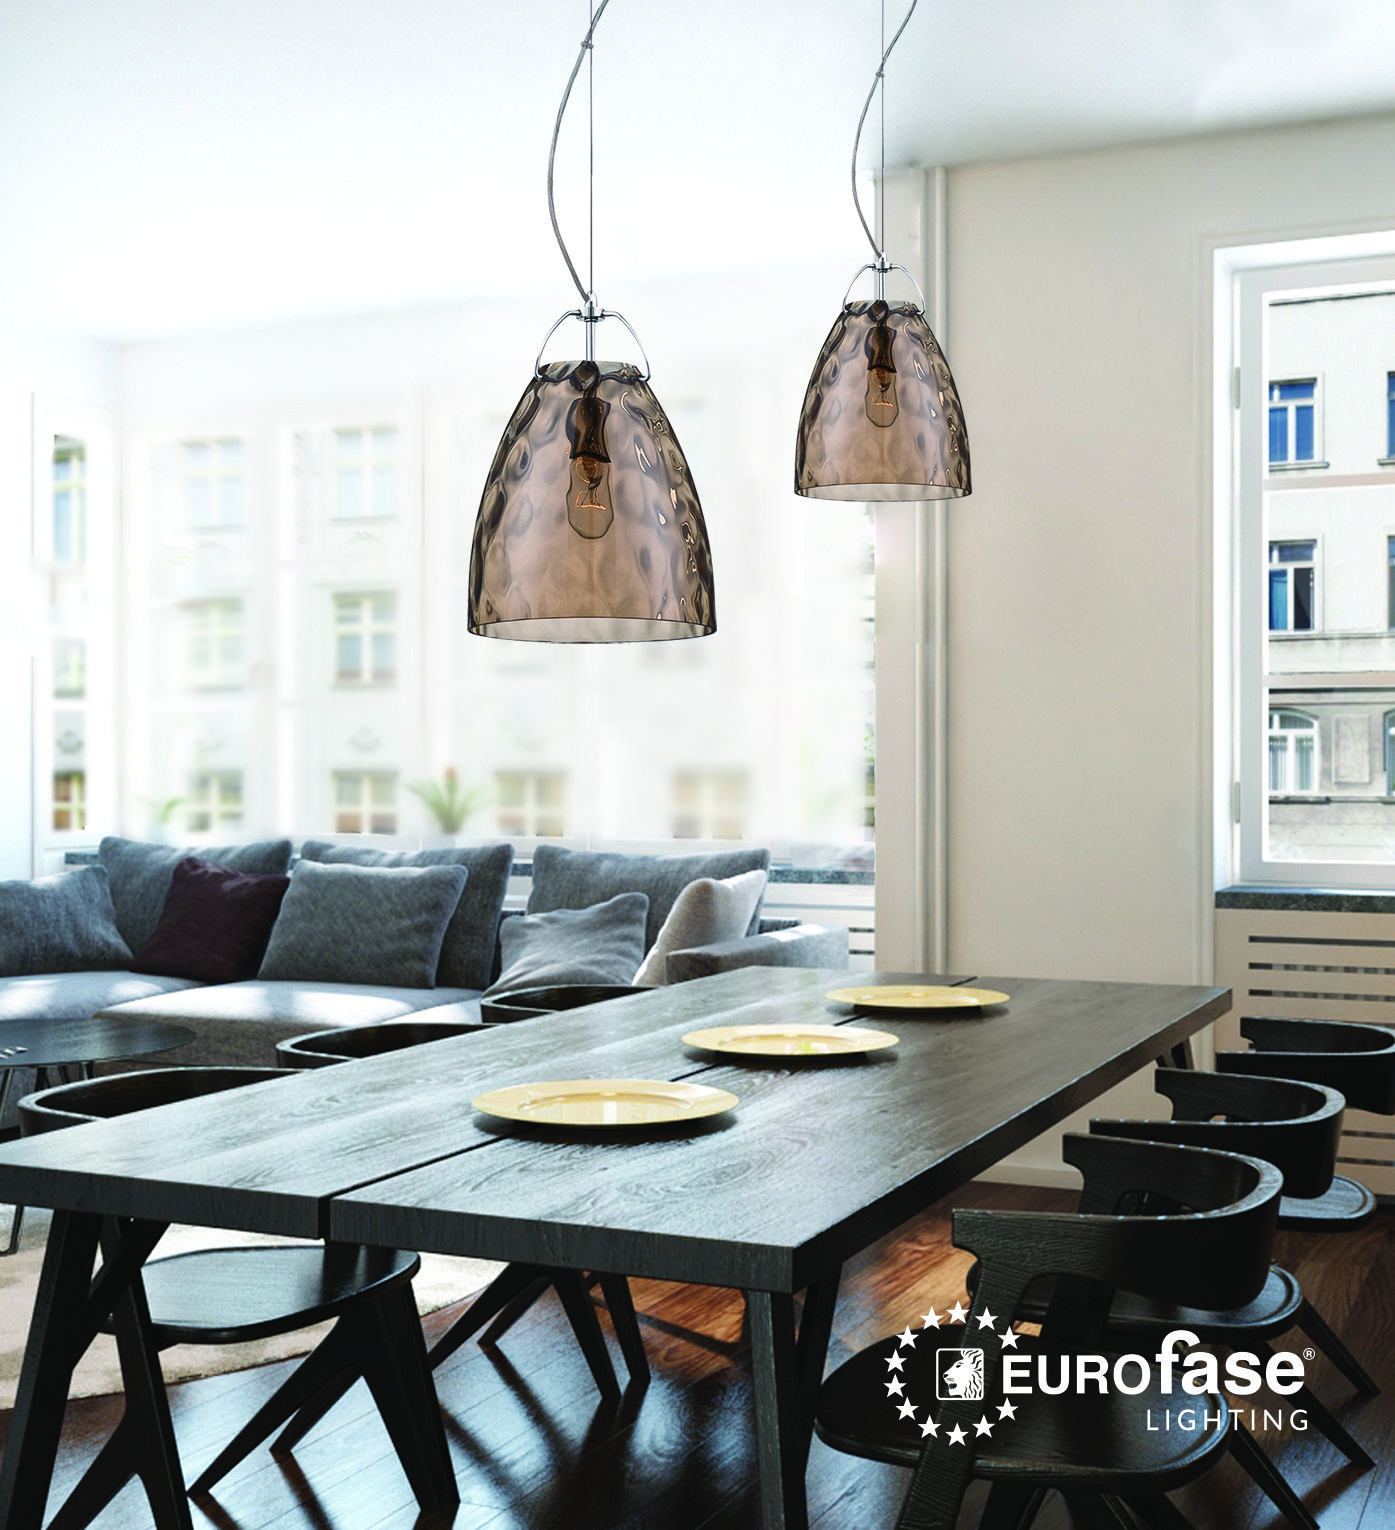 Amero pendant featuring a faceted blown glass shade interiordesign